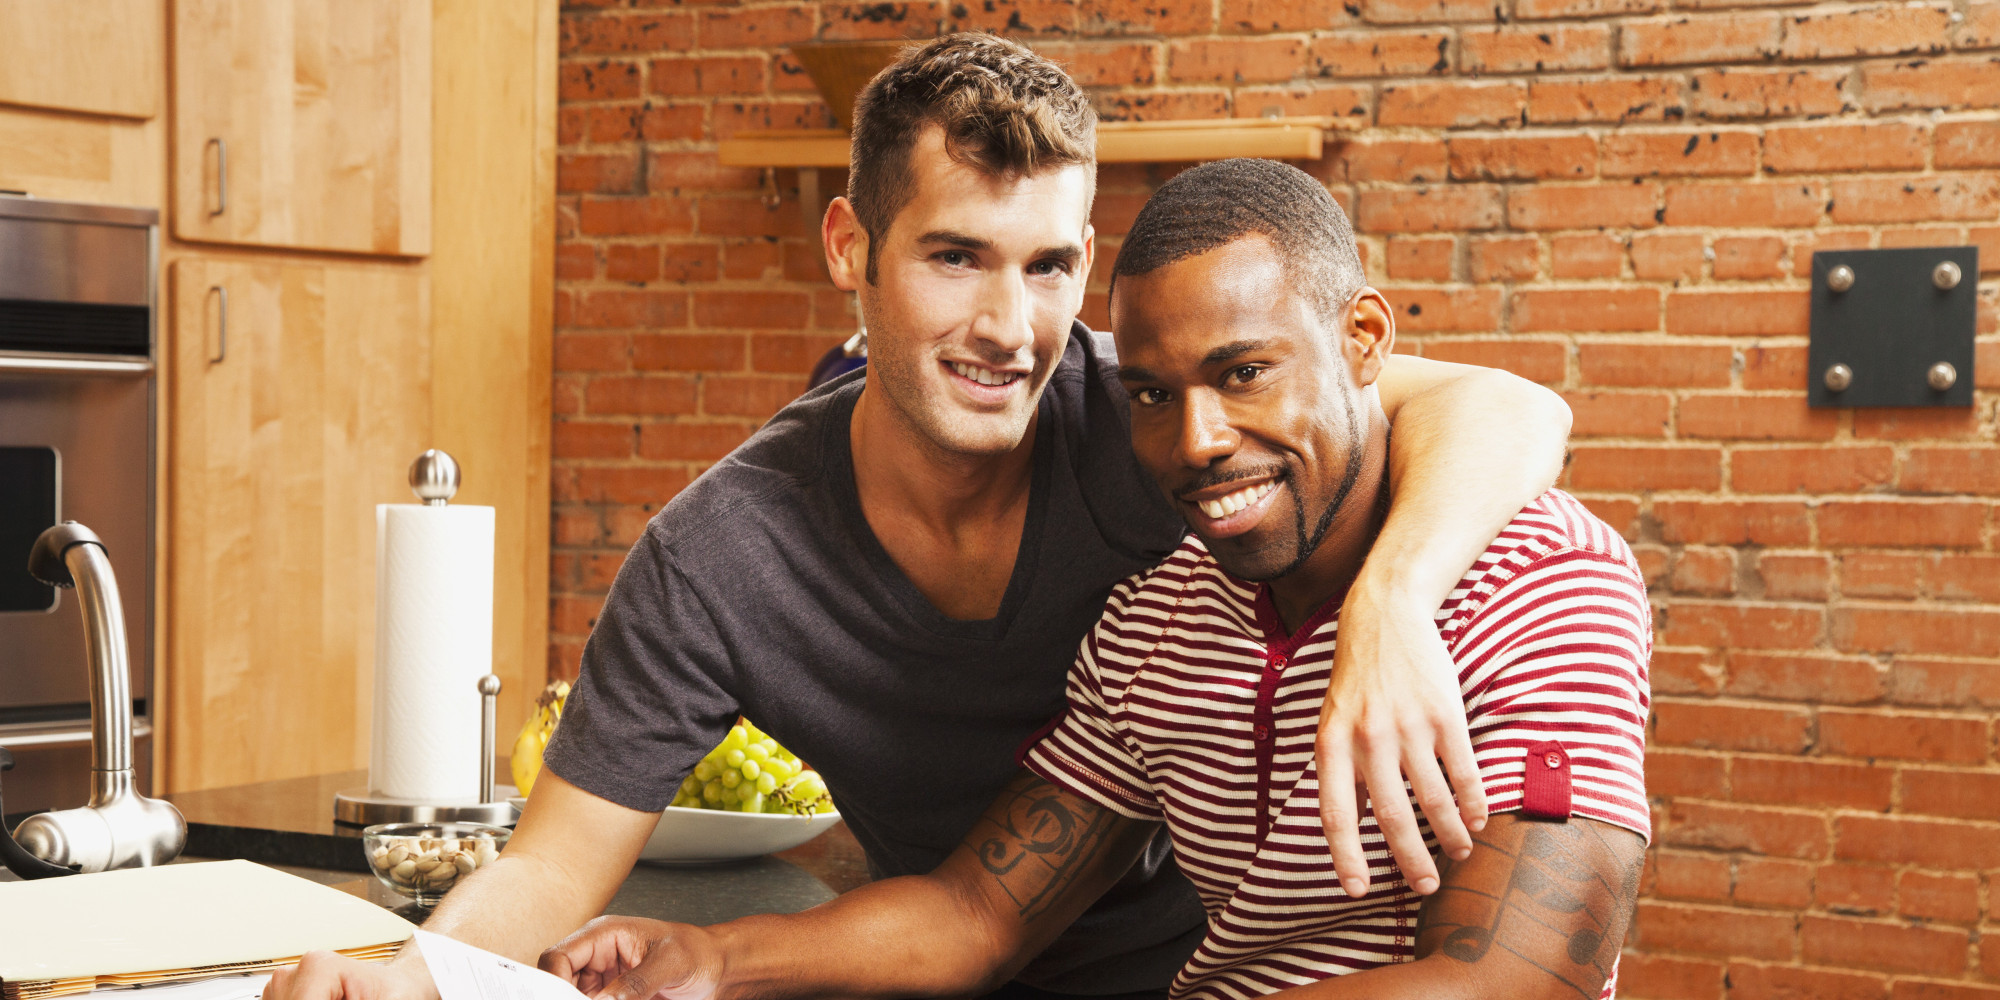 gay dating site for marriage Presenting the five best gay and lgbtq dating sites out there.